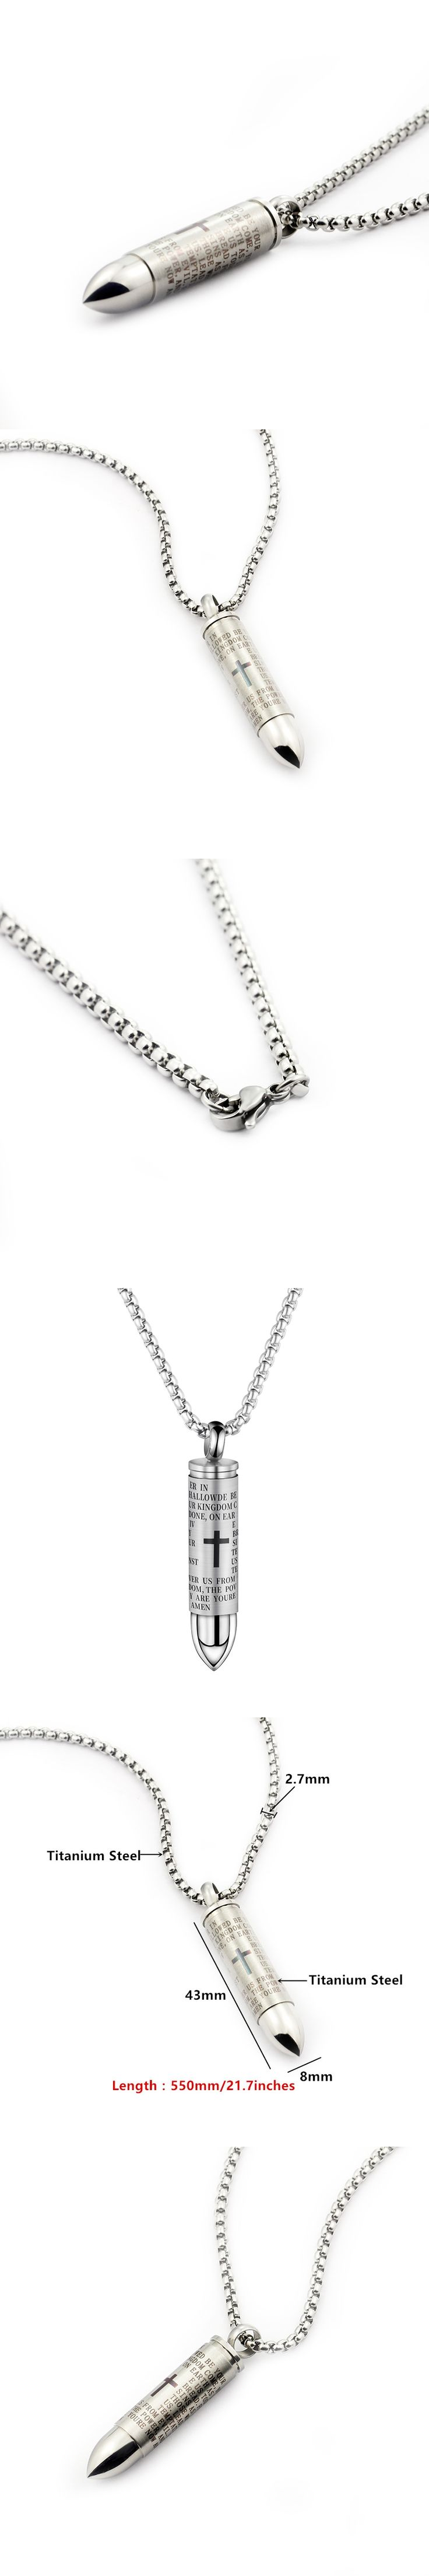 GORGEOUS TALE Hollow Bullet Pendant Necklace for Man Can be Unscrewed Cross Pendant Men Jewelry Spanish Bible Male Necklace 2017